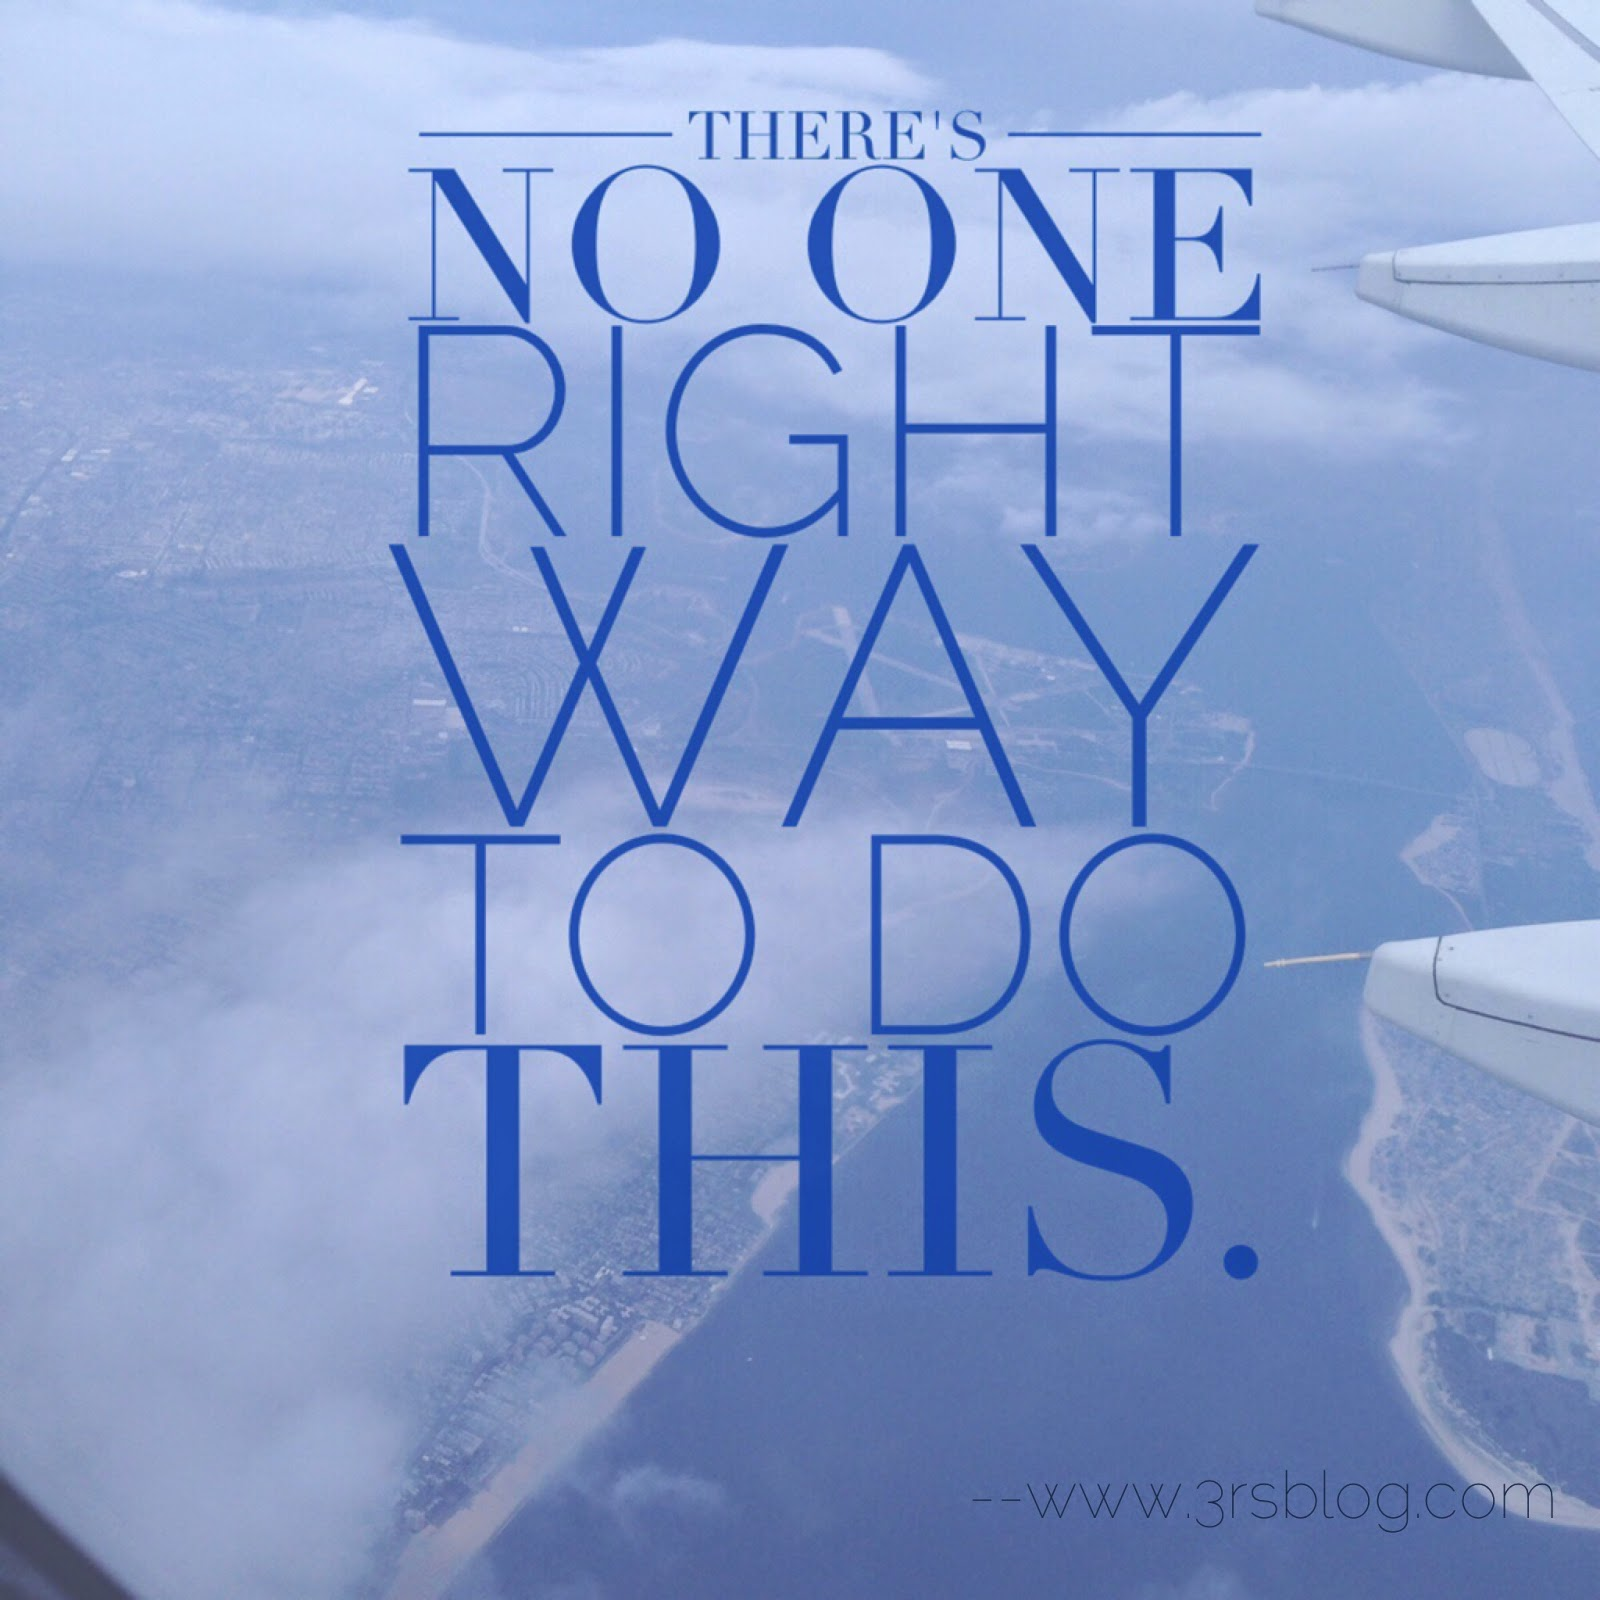 The Blogger's Credo of The 3 Rs Blog: There's no one right way to do this